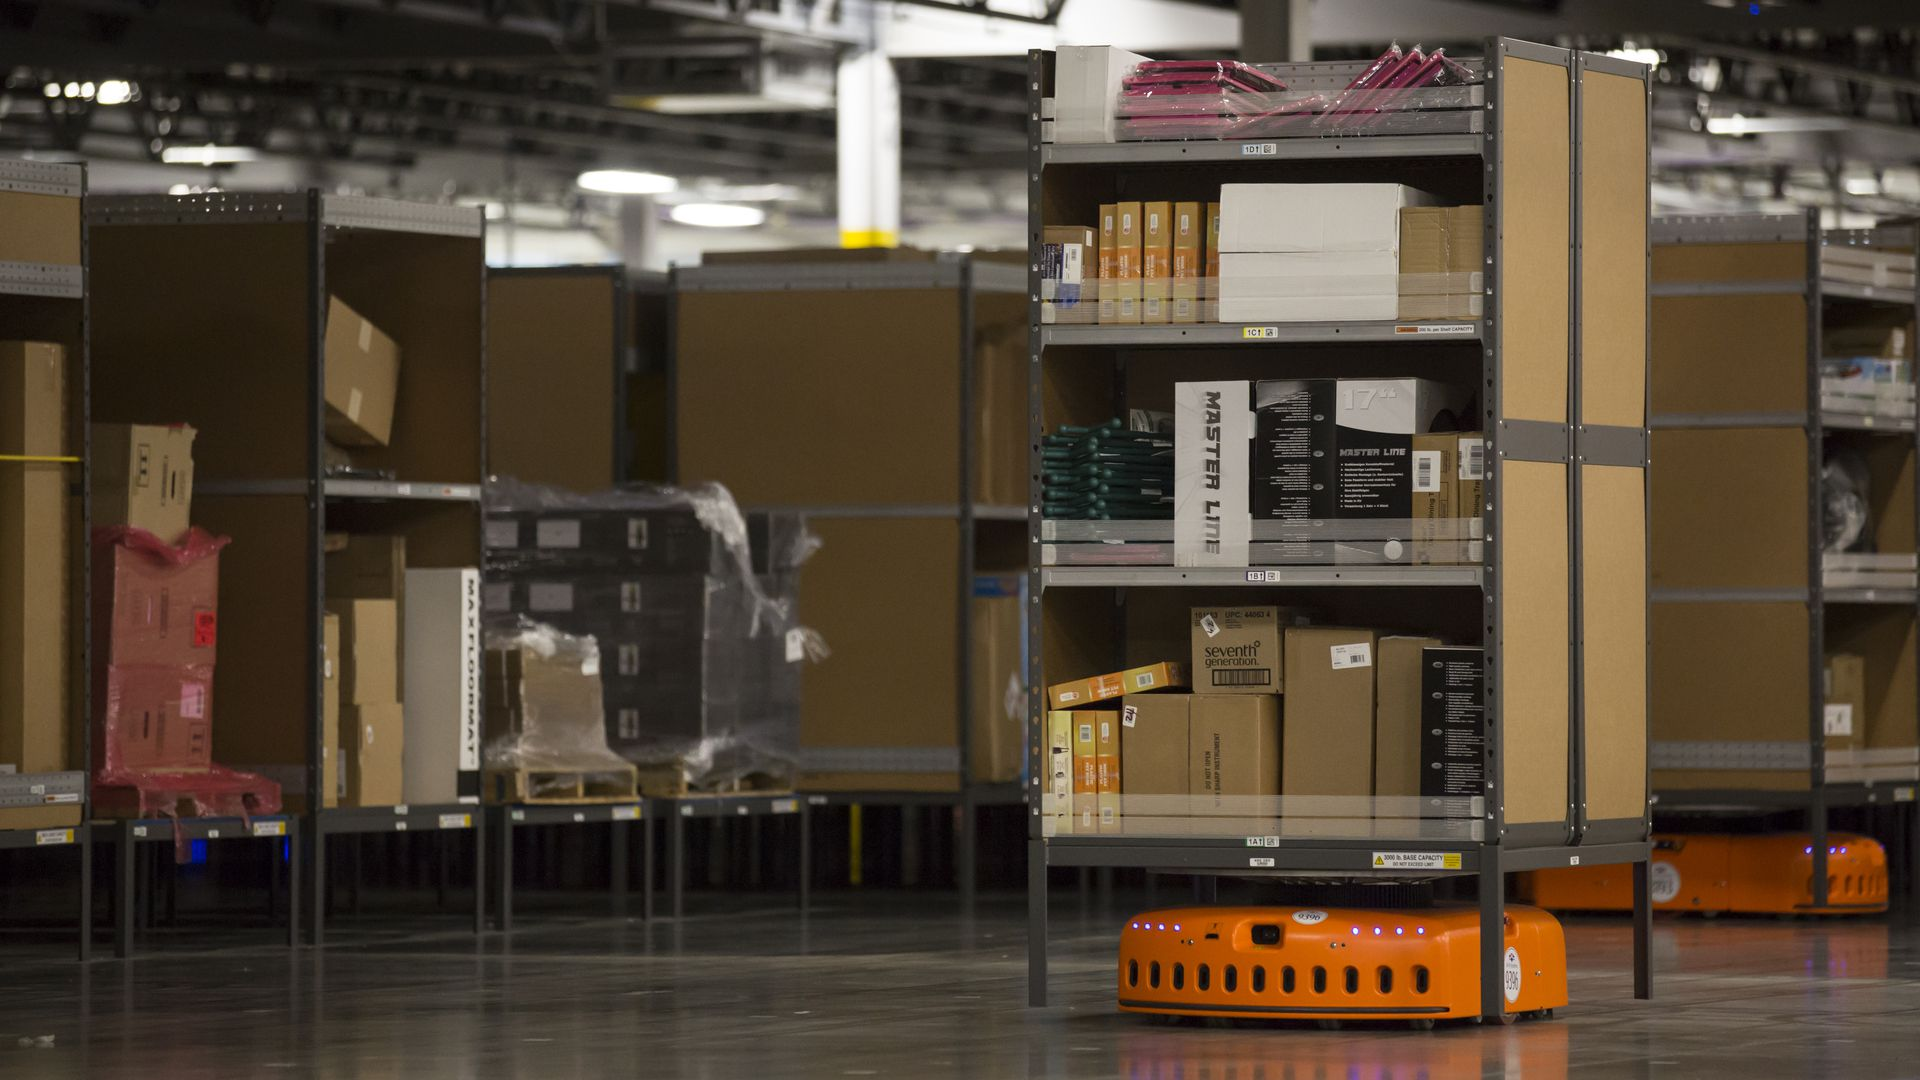 An Amazon Kiva robot, which helps fill orders by bringing shelves of merchandise to Amazon Associates